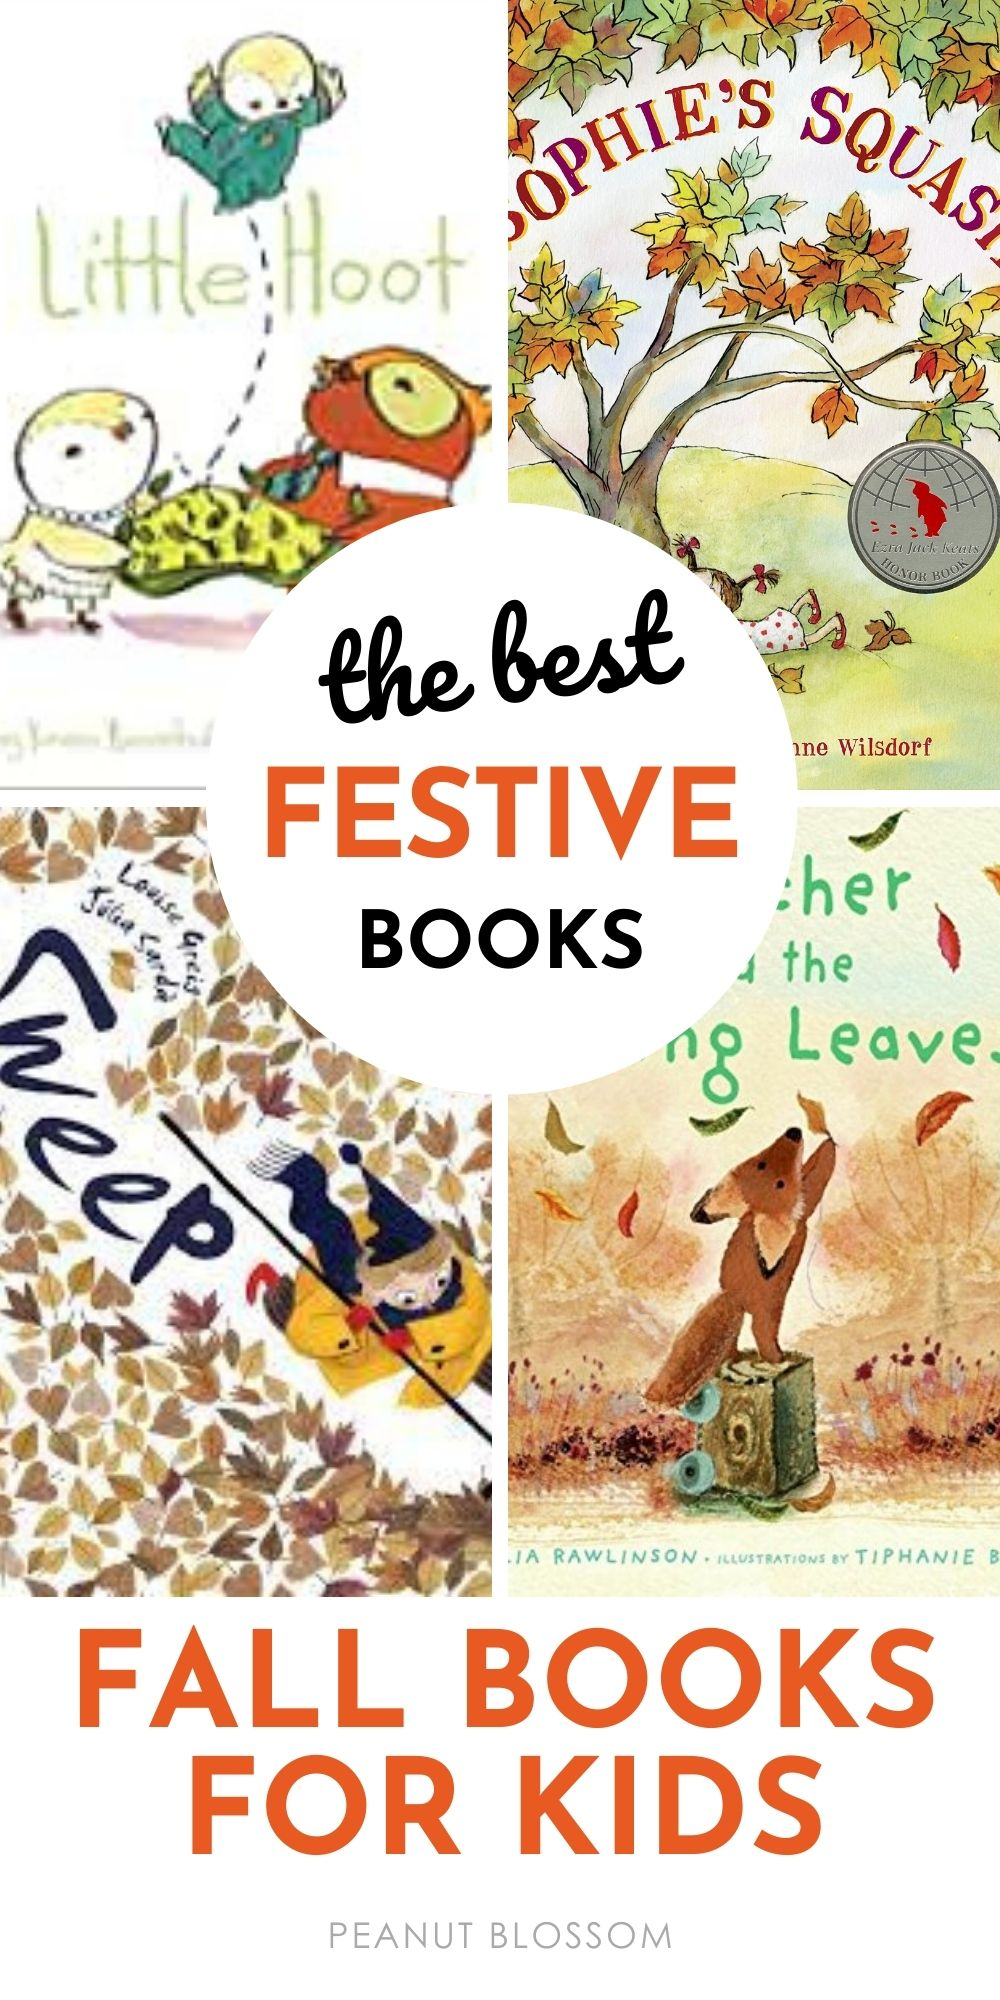 A book collage of the prettiest fall books for kids.